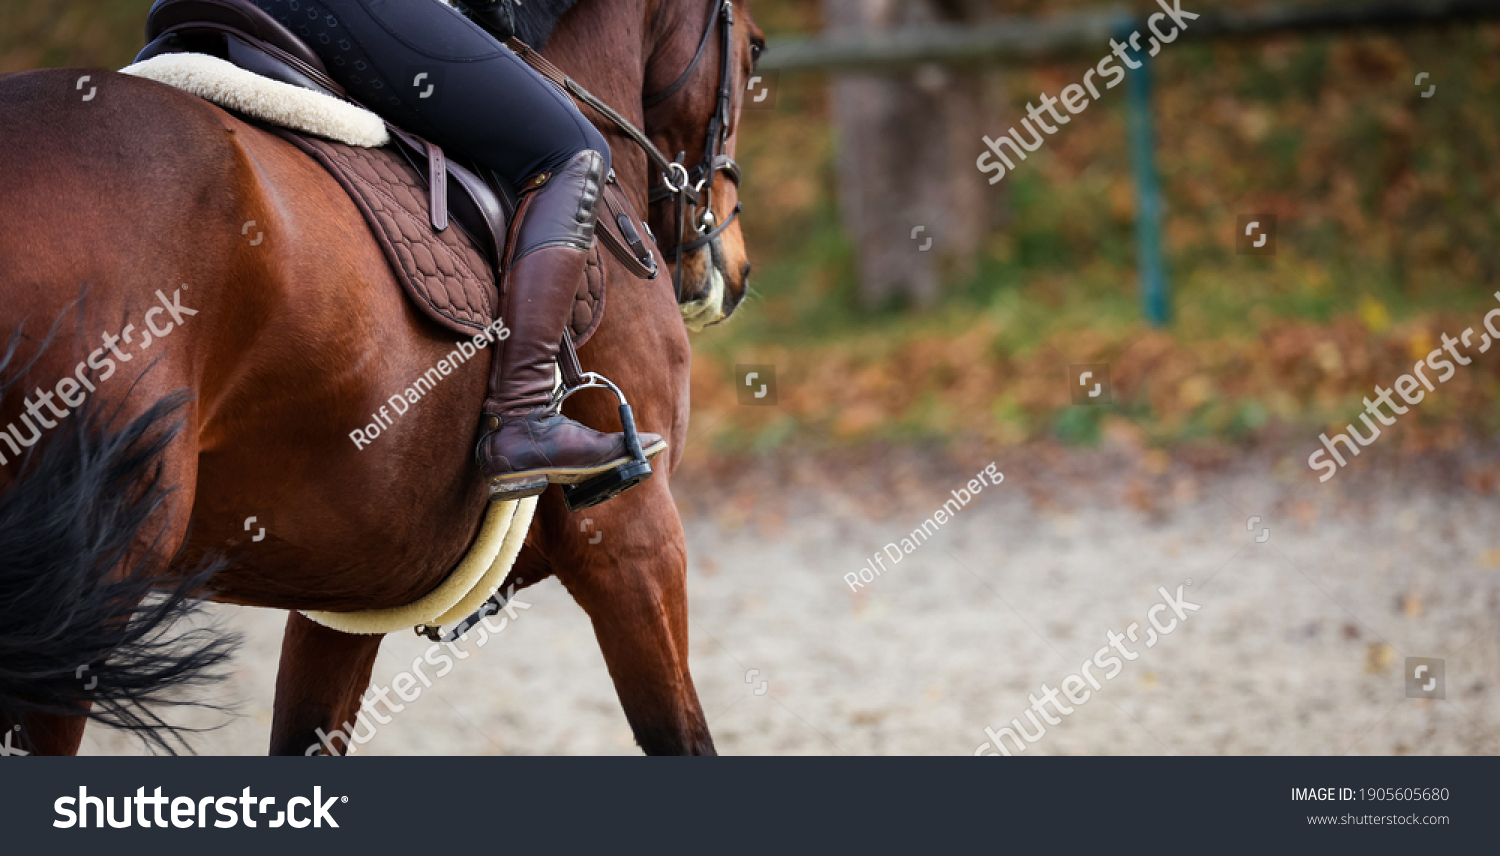 Horse with rider close up of riding boot in stirrup, focus on the boot photographed from behind. #1905605680